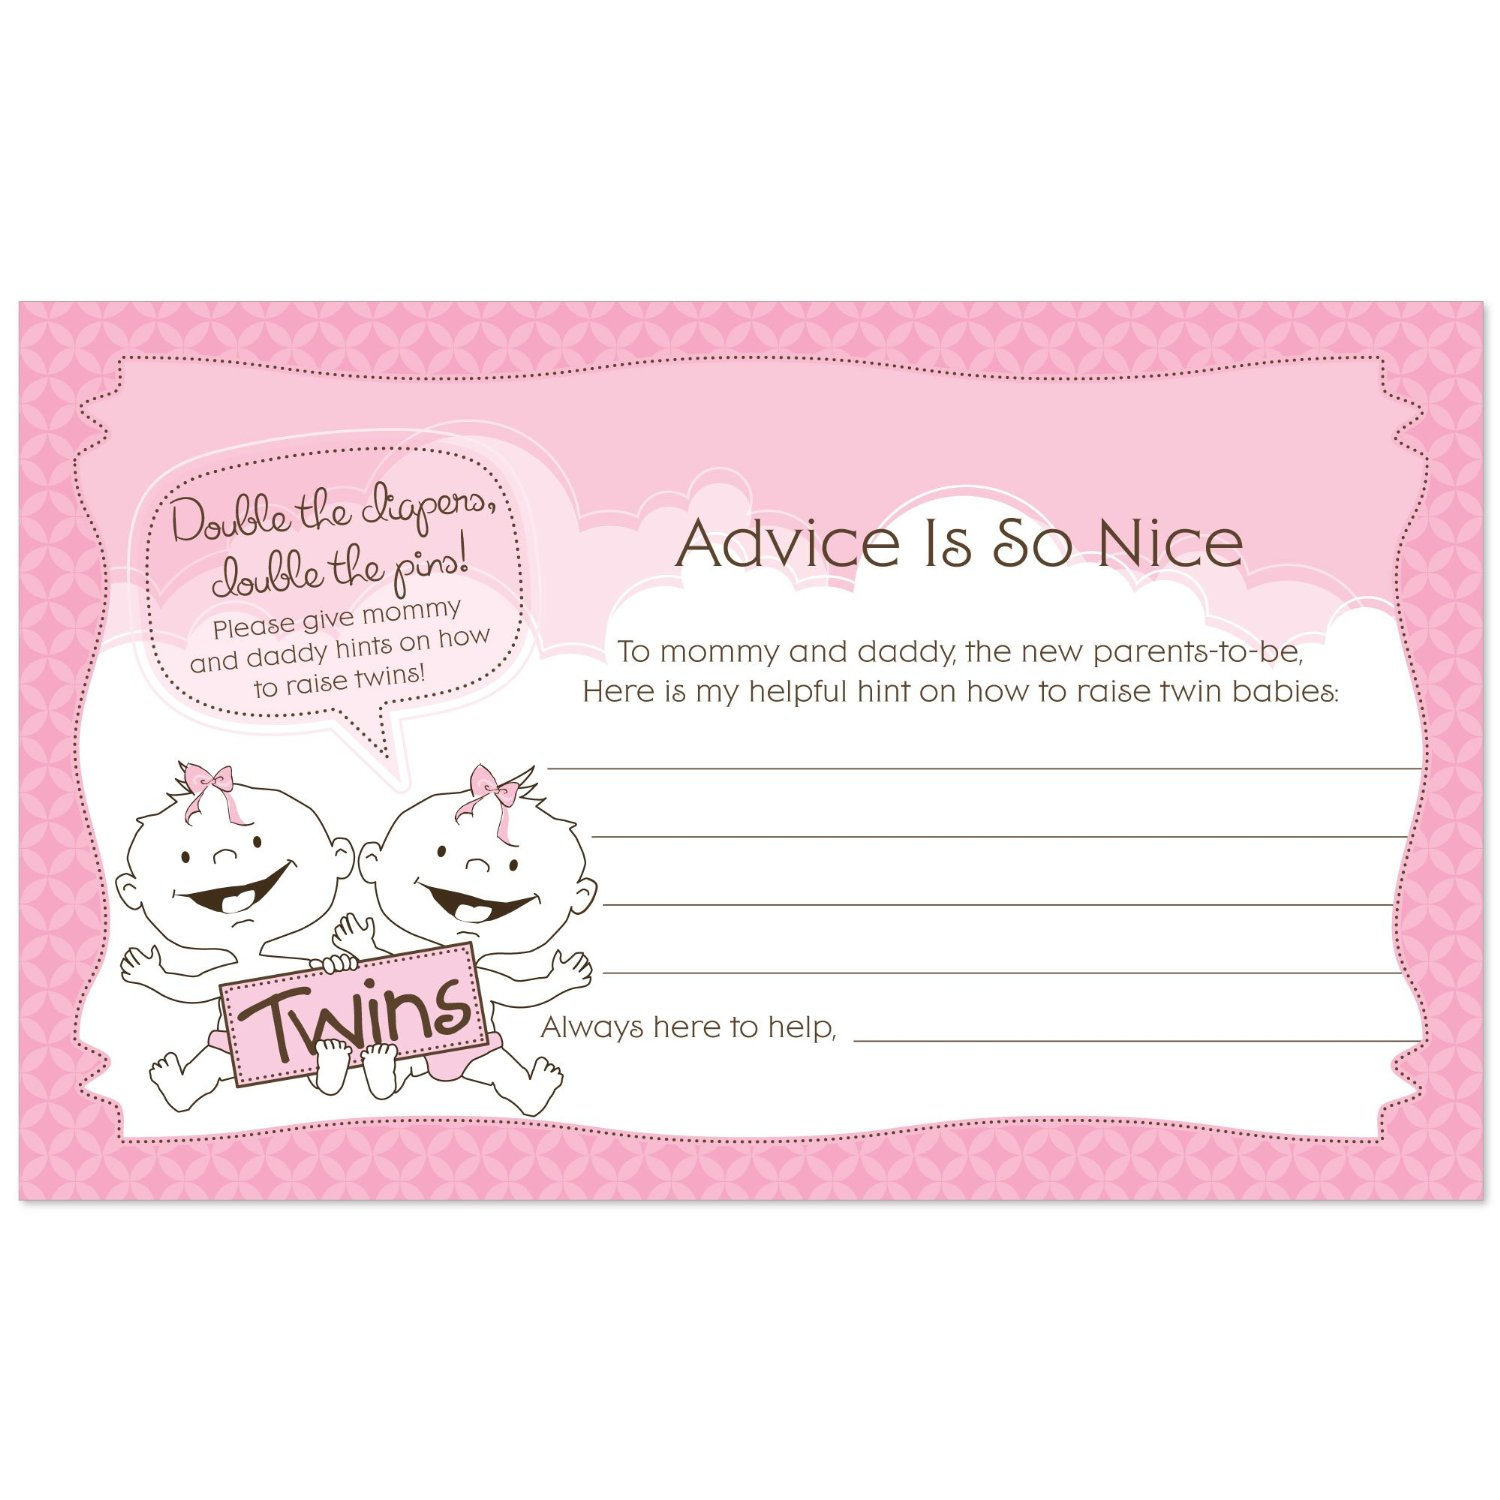 Twin Baby Girls - Baby Shower Advice Cards - 18 Count